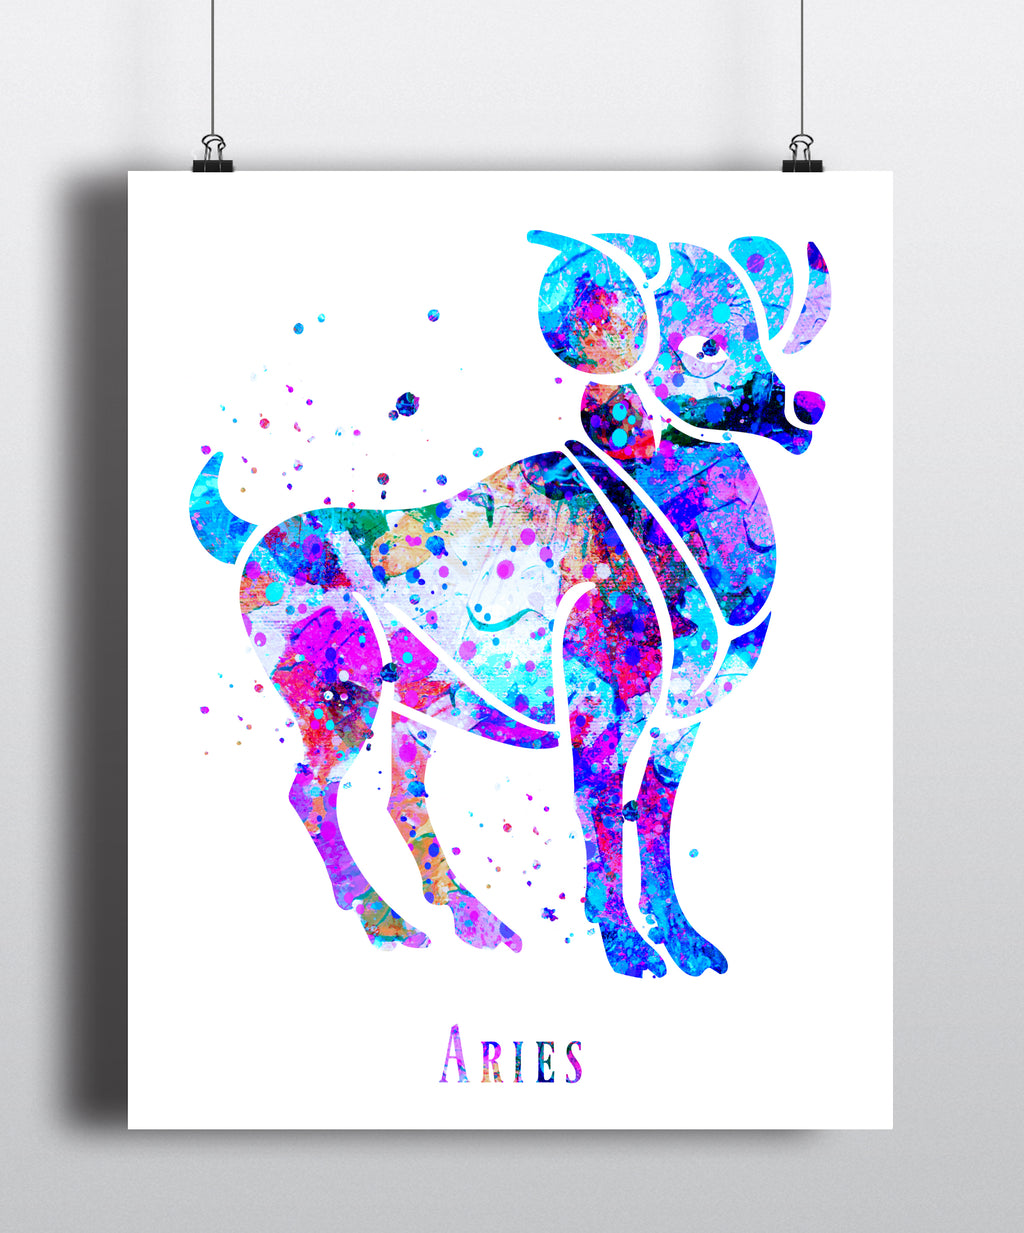 Aries Astrology Art Print - Unframed